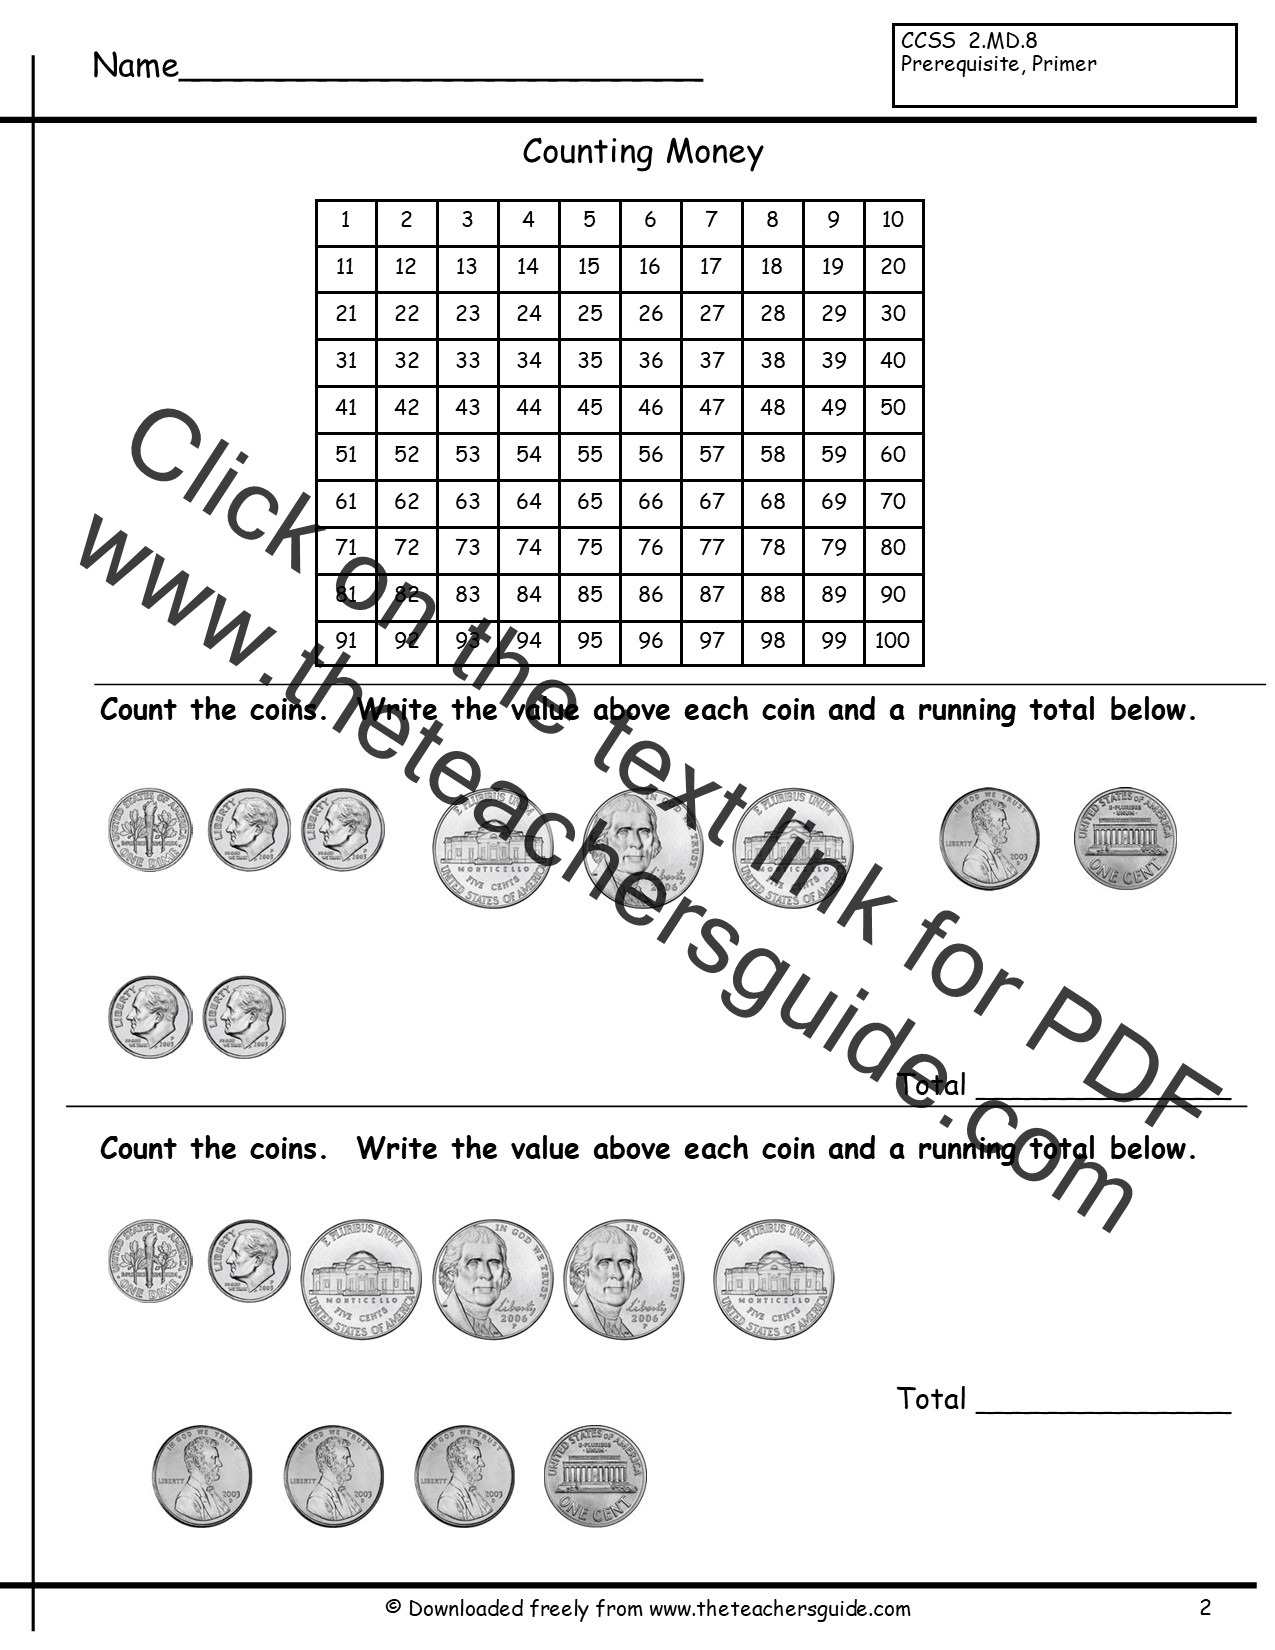 Counting Coins Worksheets from The Teachers Guide – Counting Coin Worksheets